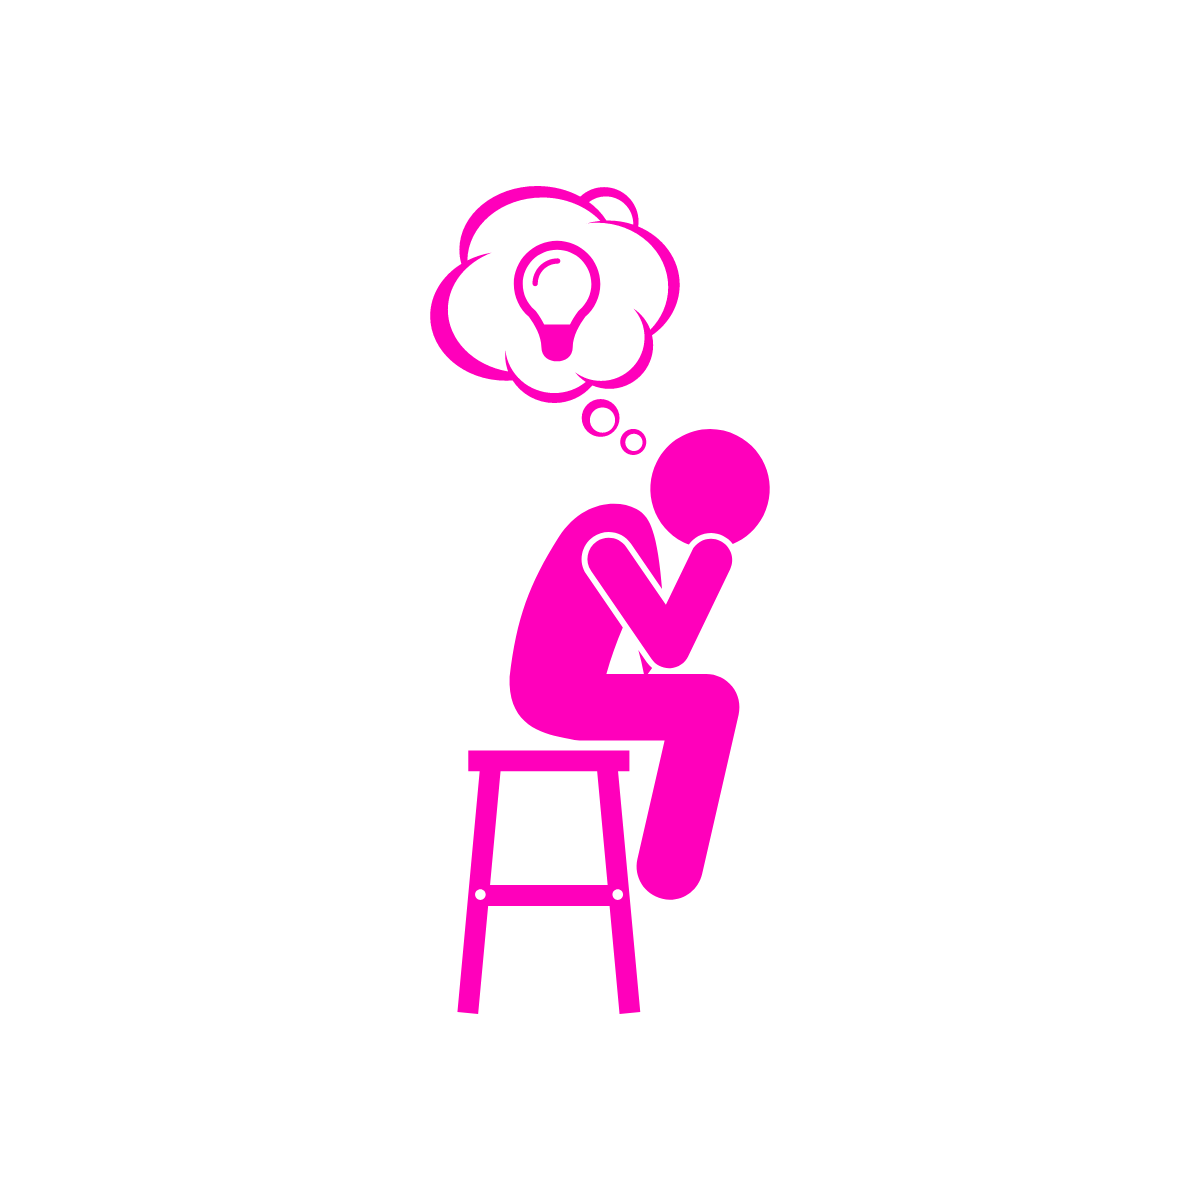 line drawing of a person in a thinking pose with a light bulb in a thought bubble